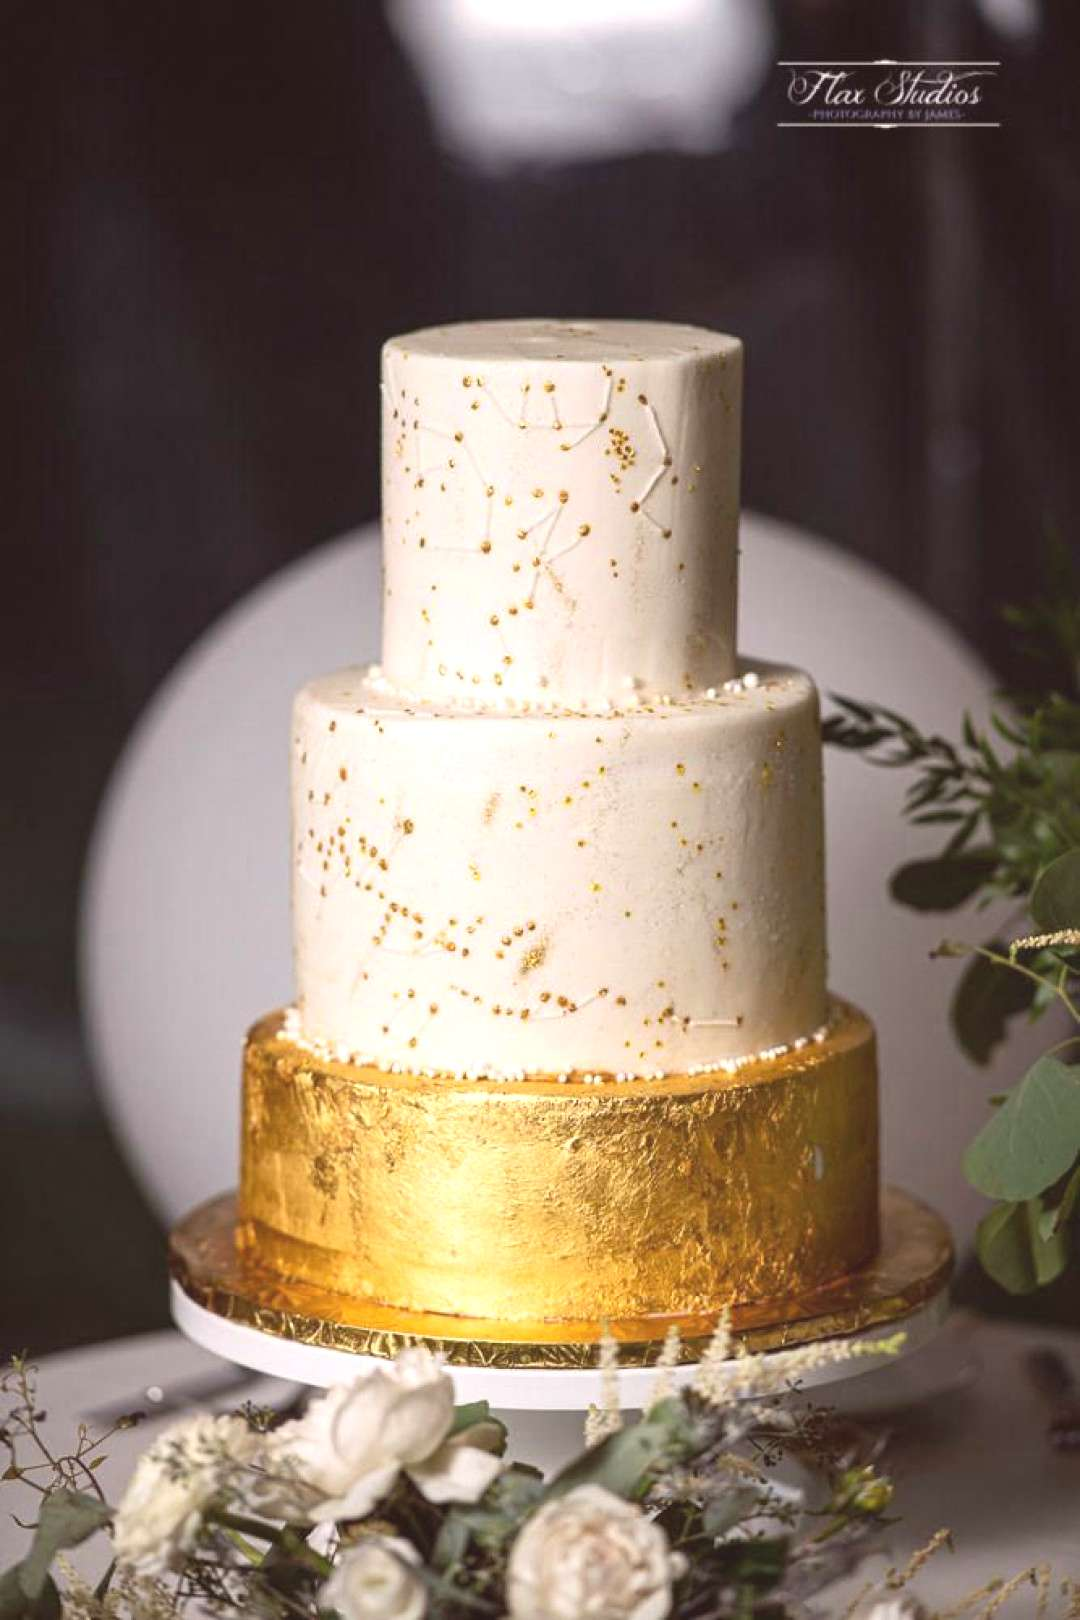 Star constellation wedding cake for those who love the night sky! Gold and white theme.